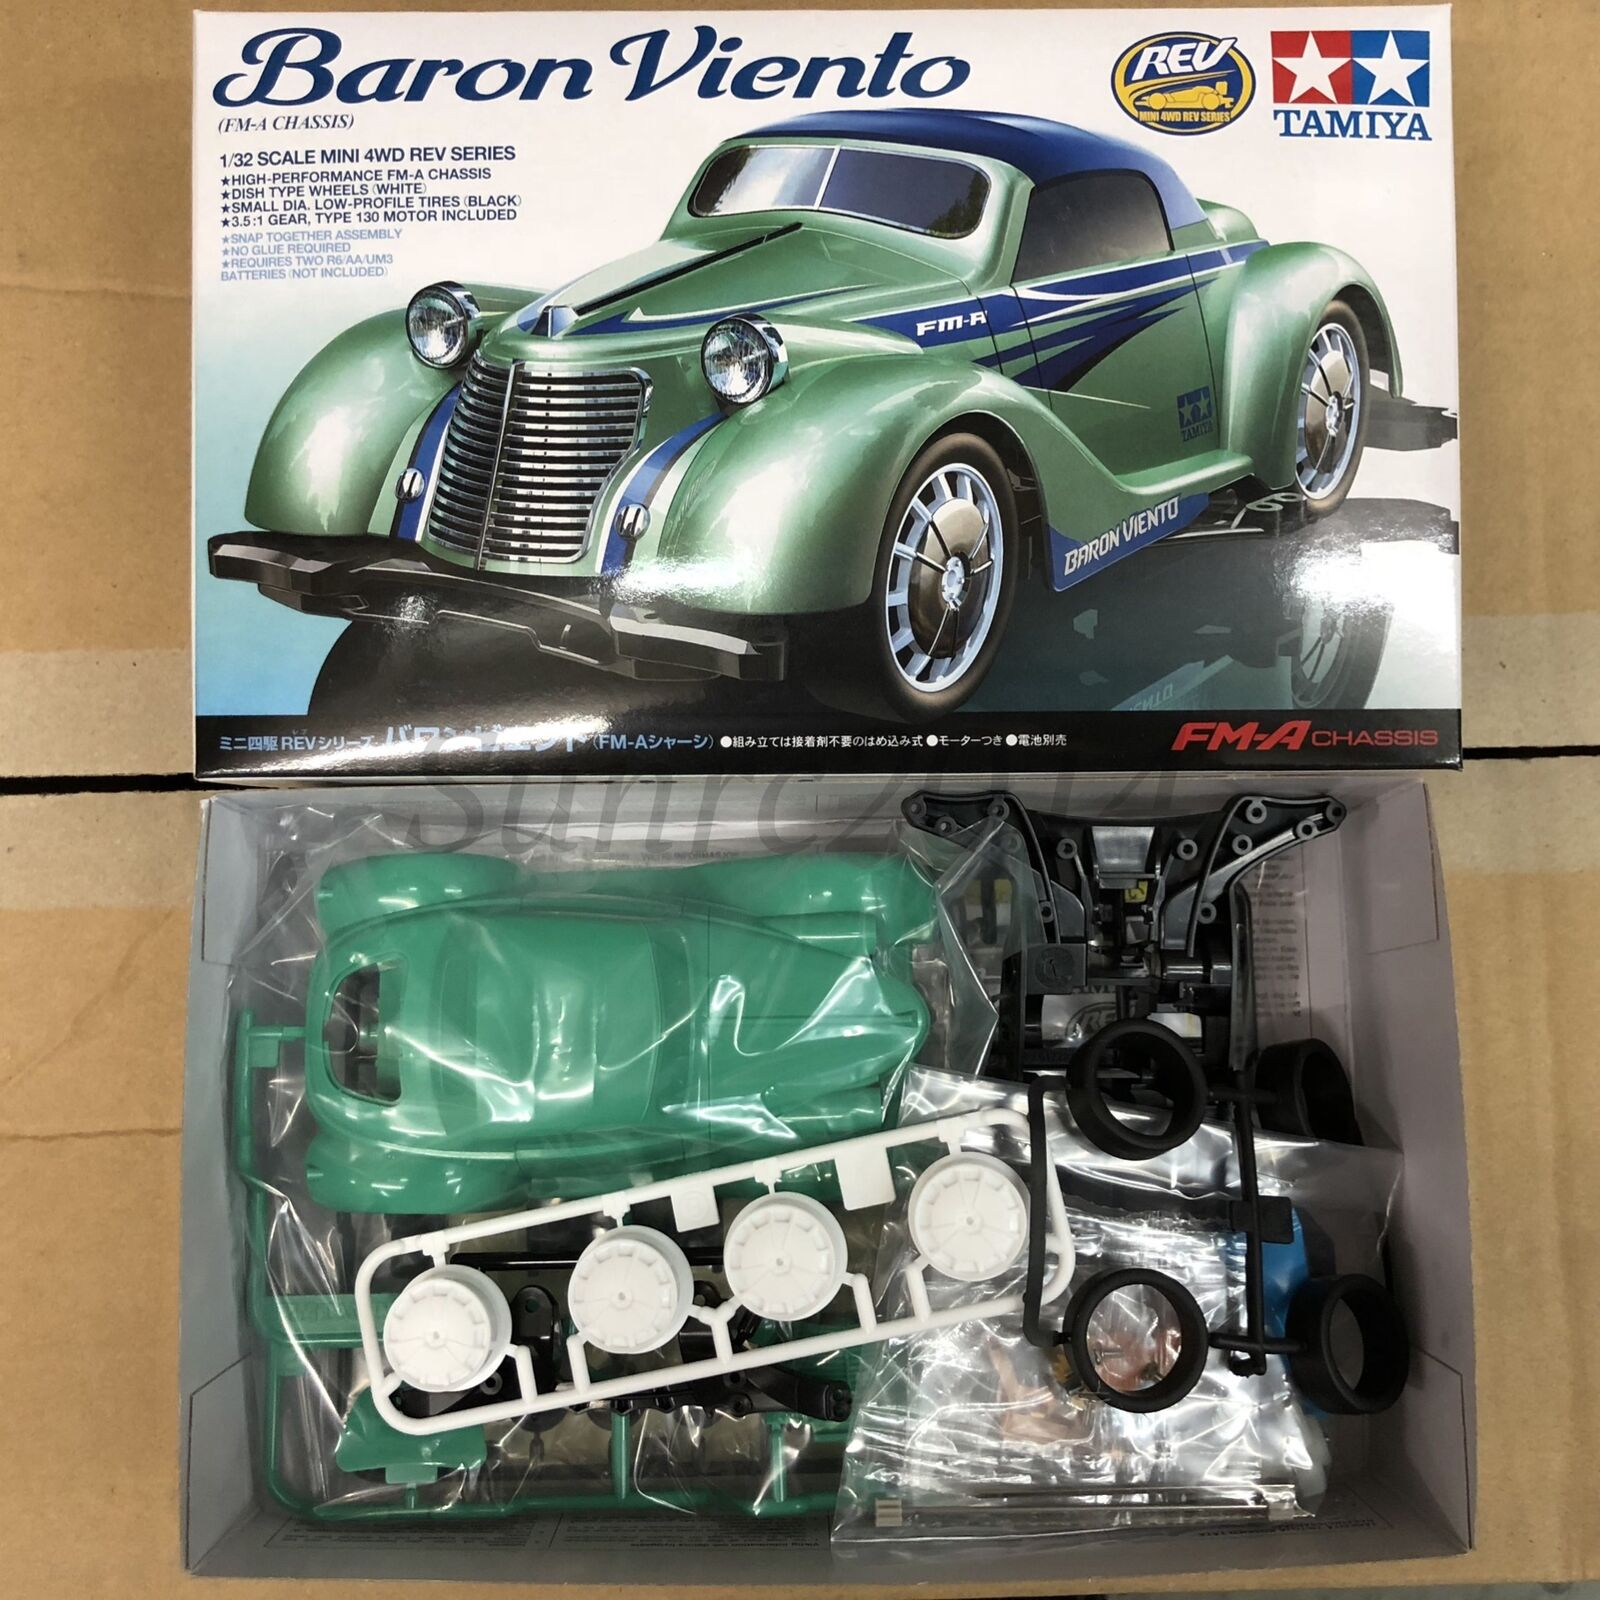 Tamiya 18709 1 32 Mini 4wd Jr Baron Viento Fm A Chassis Kit Tz Original Of 2only 5 Available